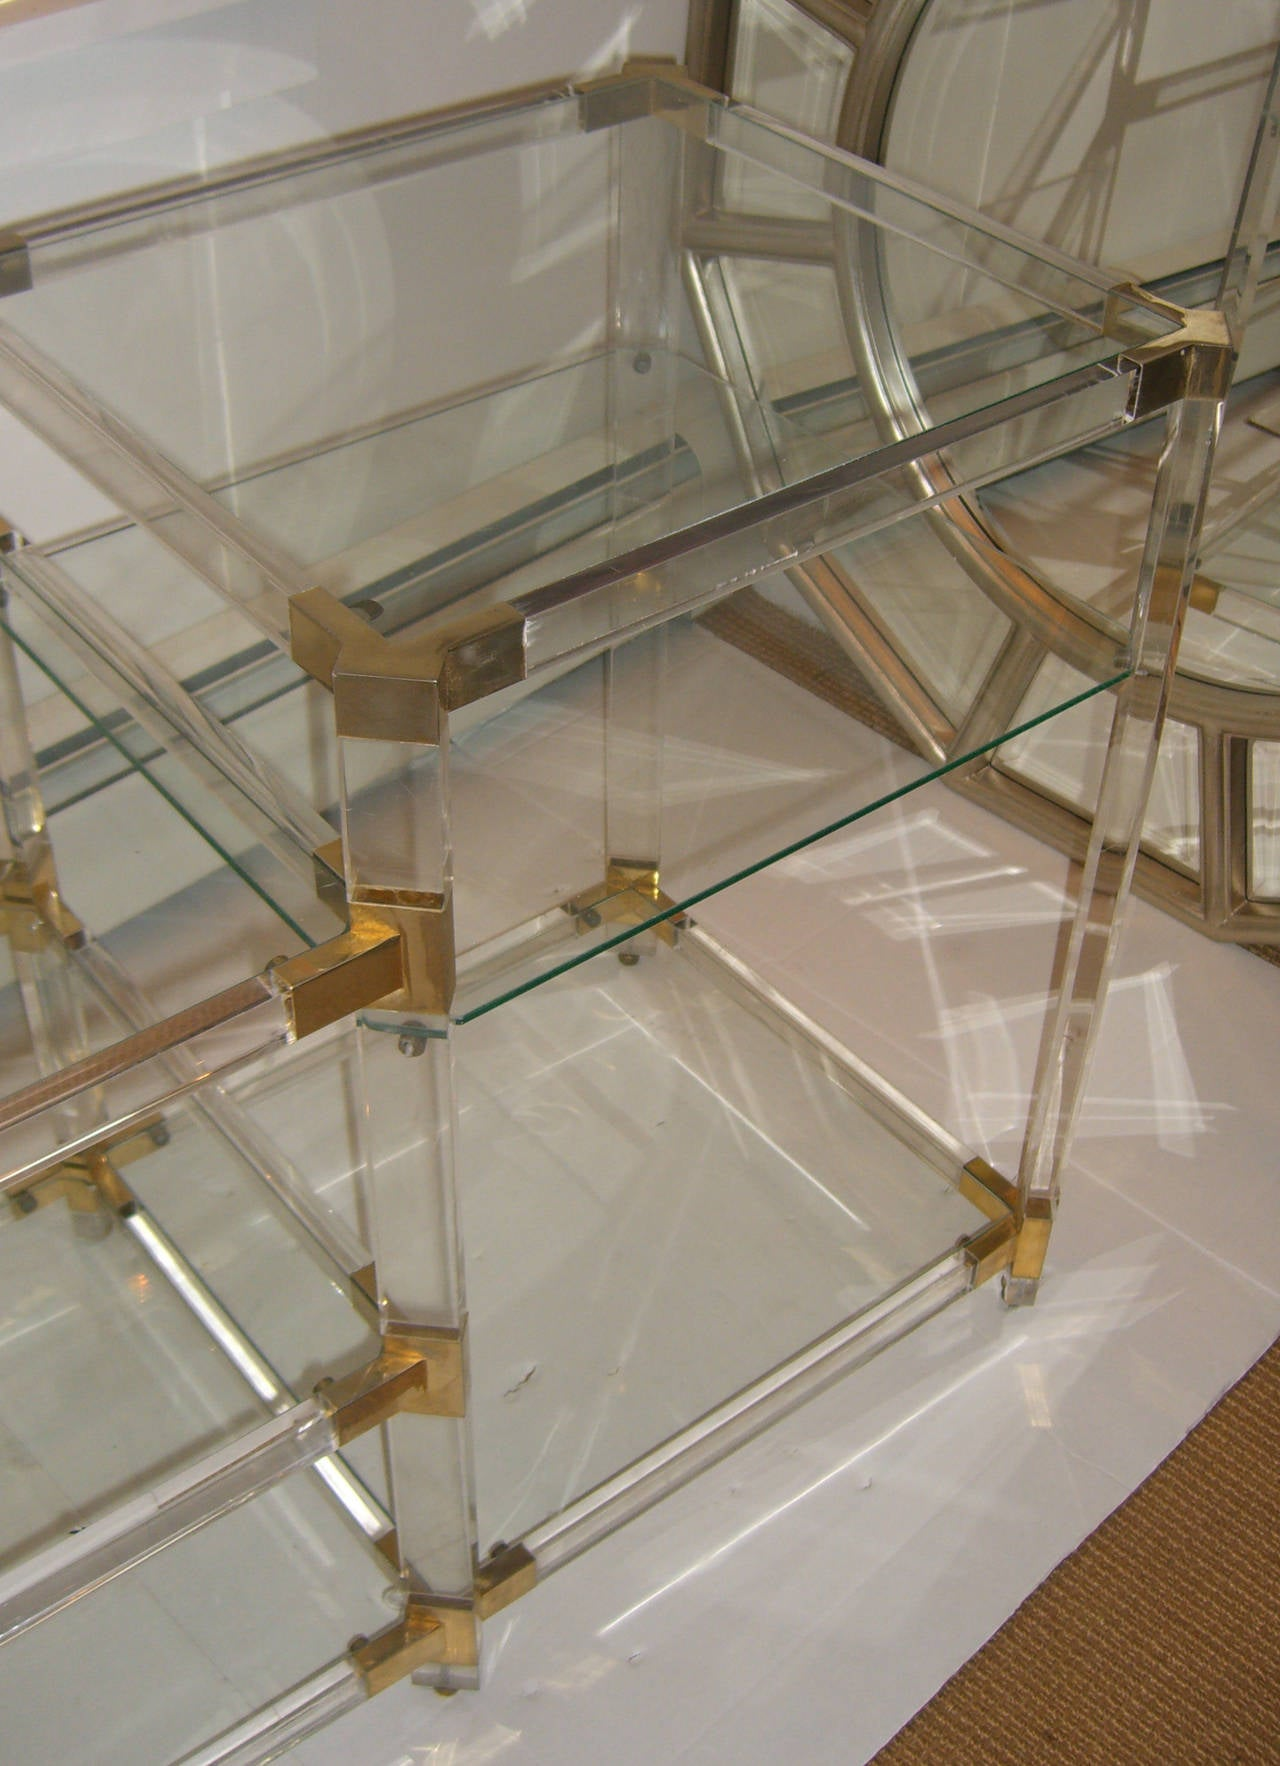 French 1970s Lucite Console with Glass Shelves In Excellent Condition For Sale In Mt Kisco, NY